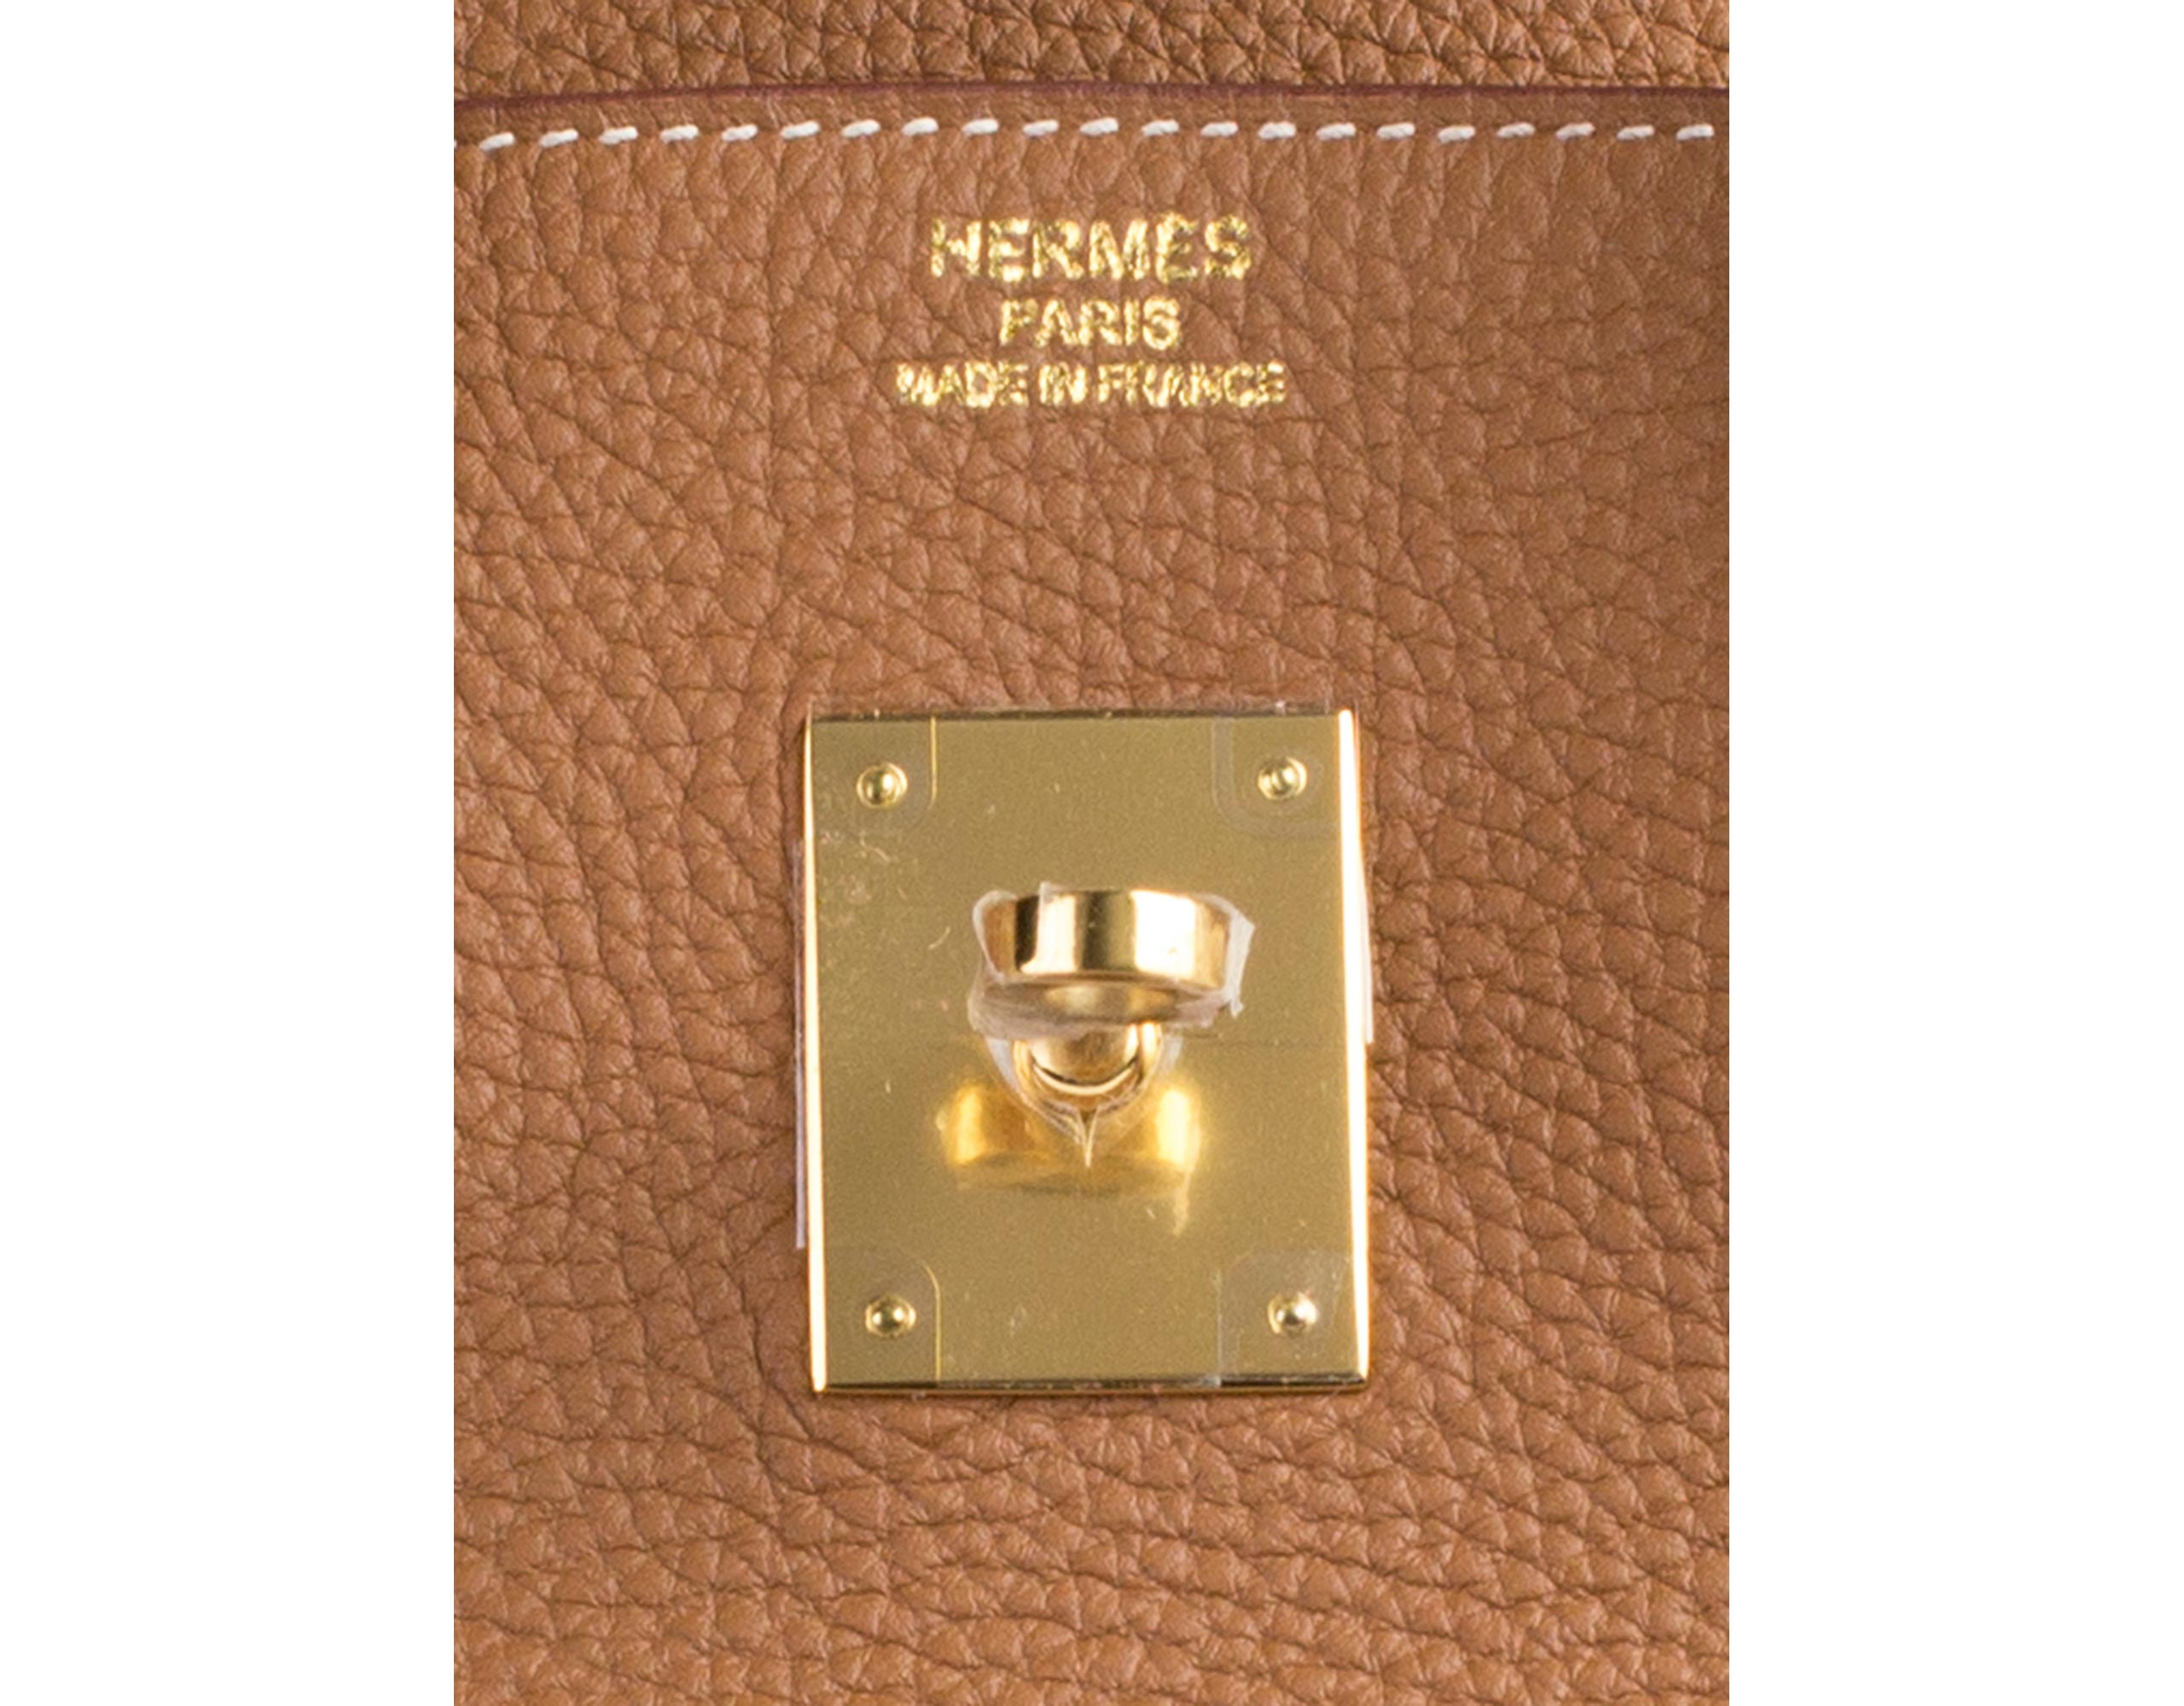 Hermes Birkin Bag Gold Togo 35cm Gilt